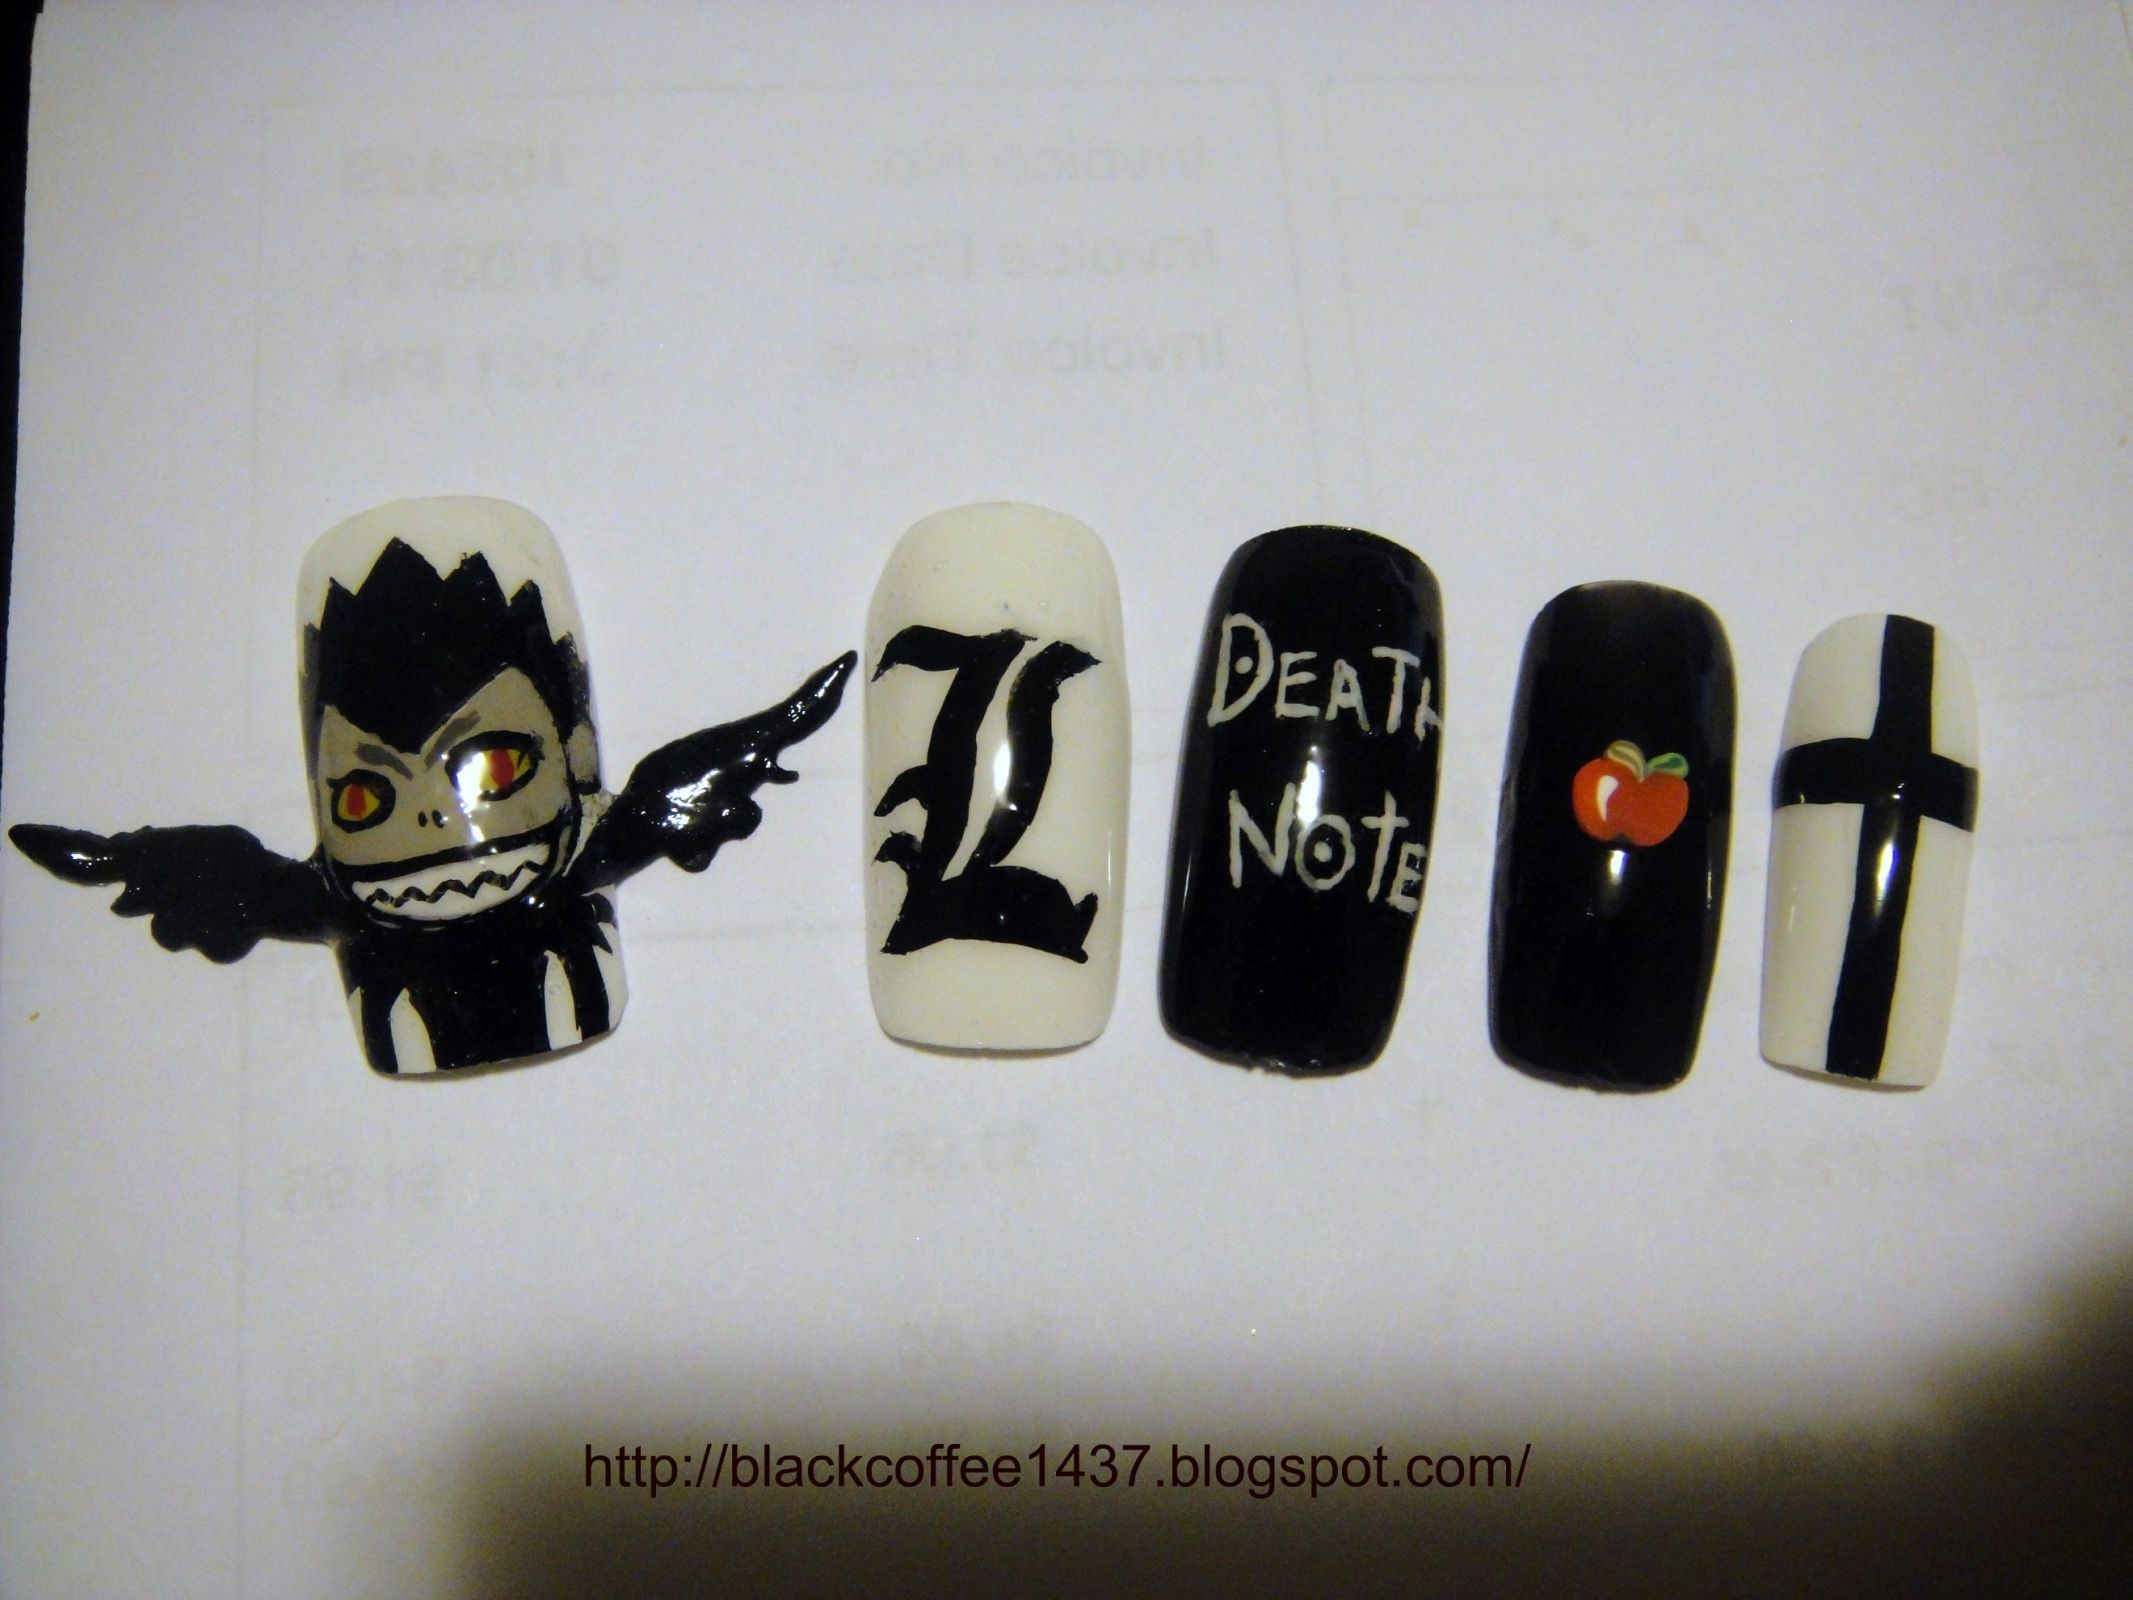 DEATHNOTE! | Nail Art | Pinterest | Death note, Death and Anime